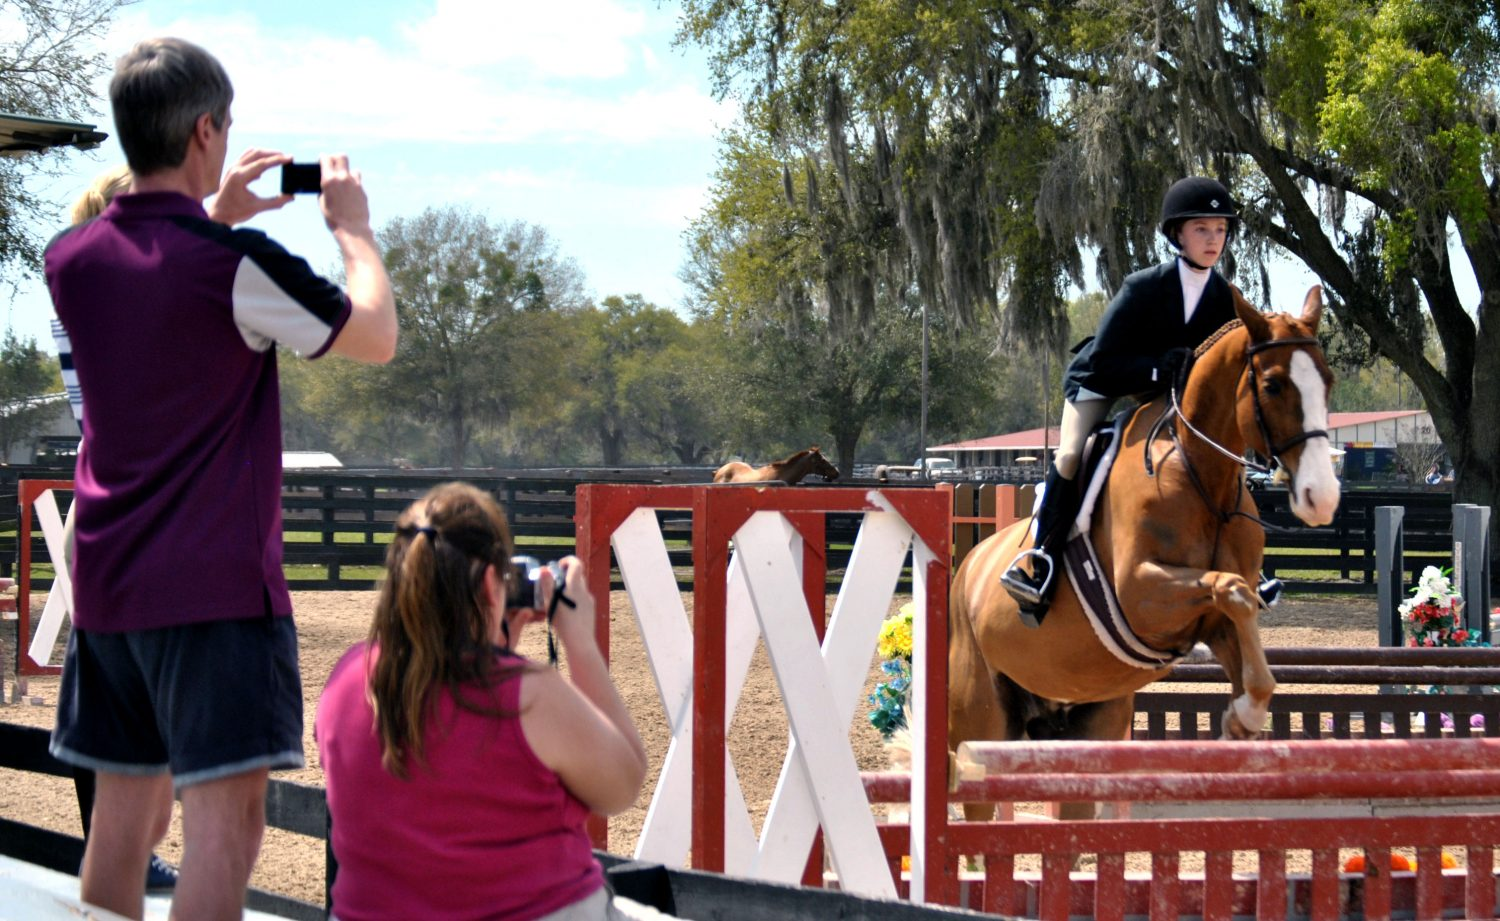 Heather Musson, 14-year-old equistrian from Ontario, shows her new horse, Crackerjack, as her family captures her performance. HITS is Musson's first international competition, and she was named Reserve Champion on Sunday.